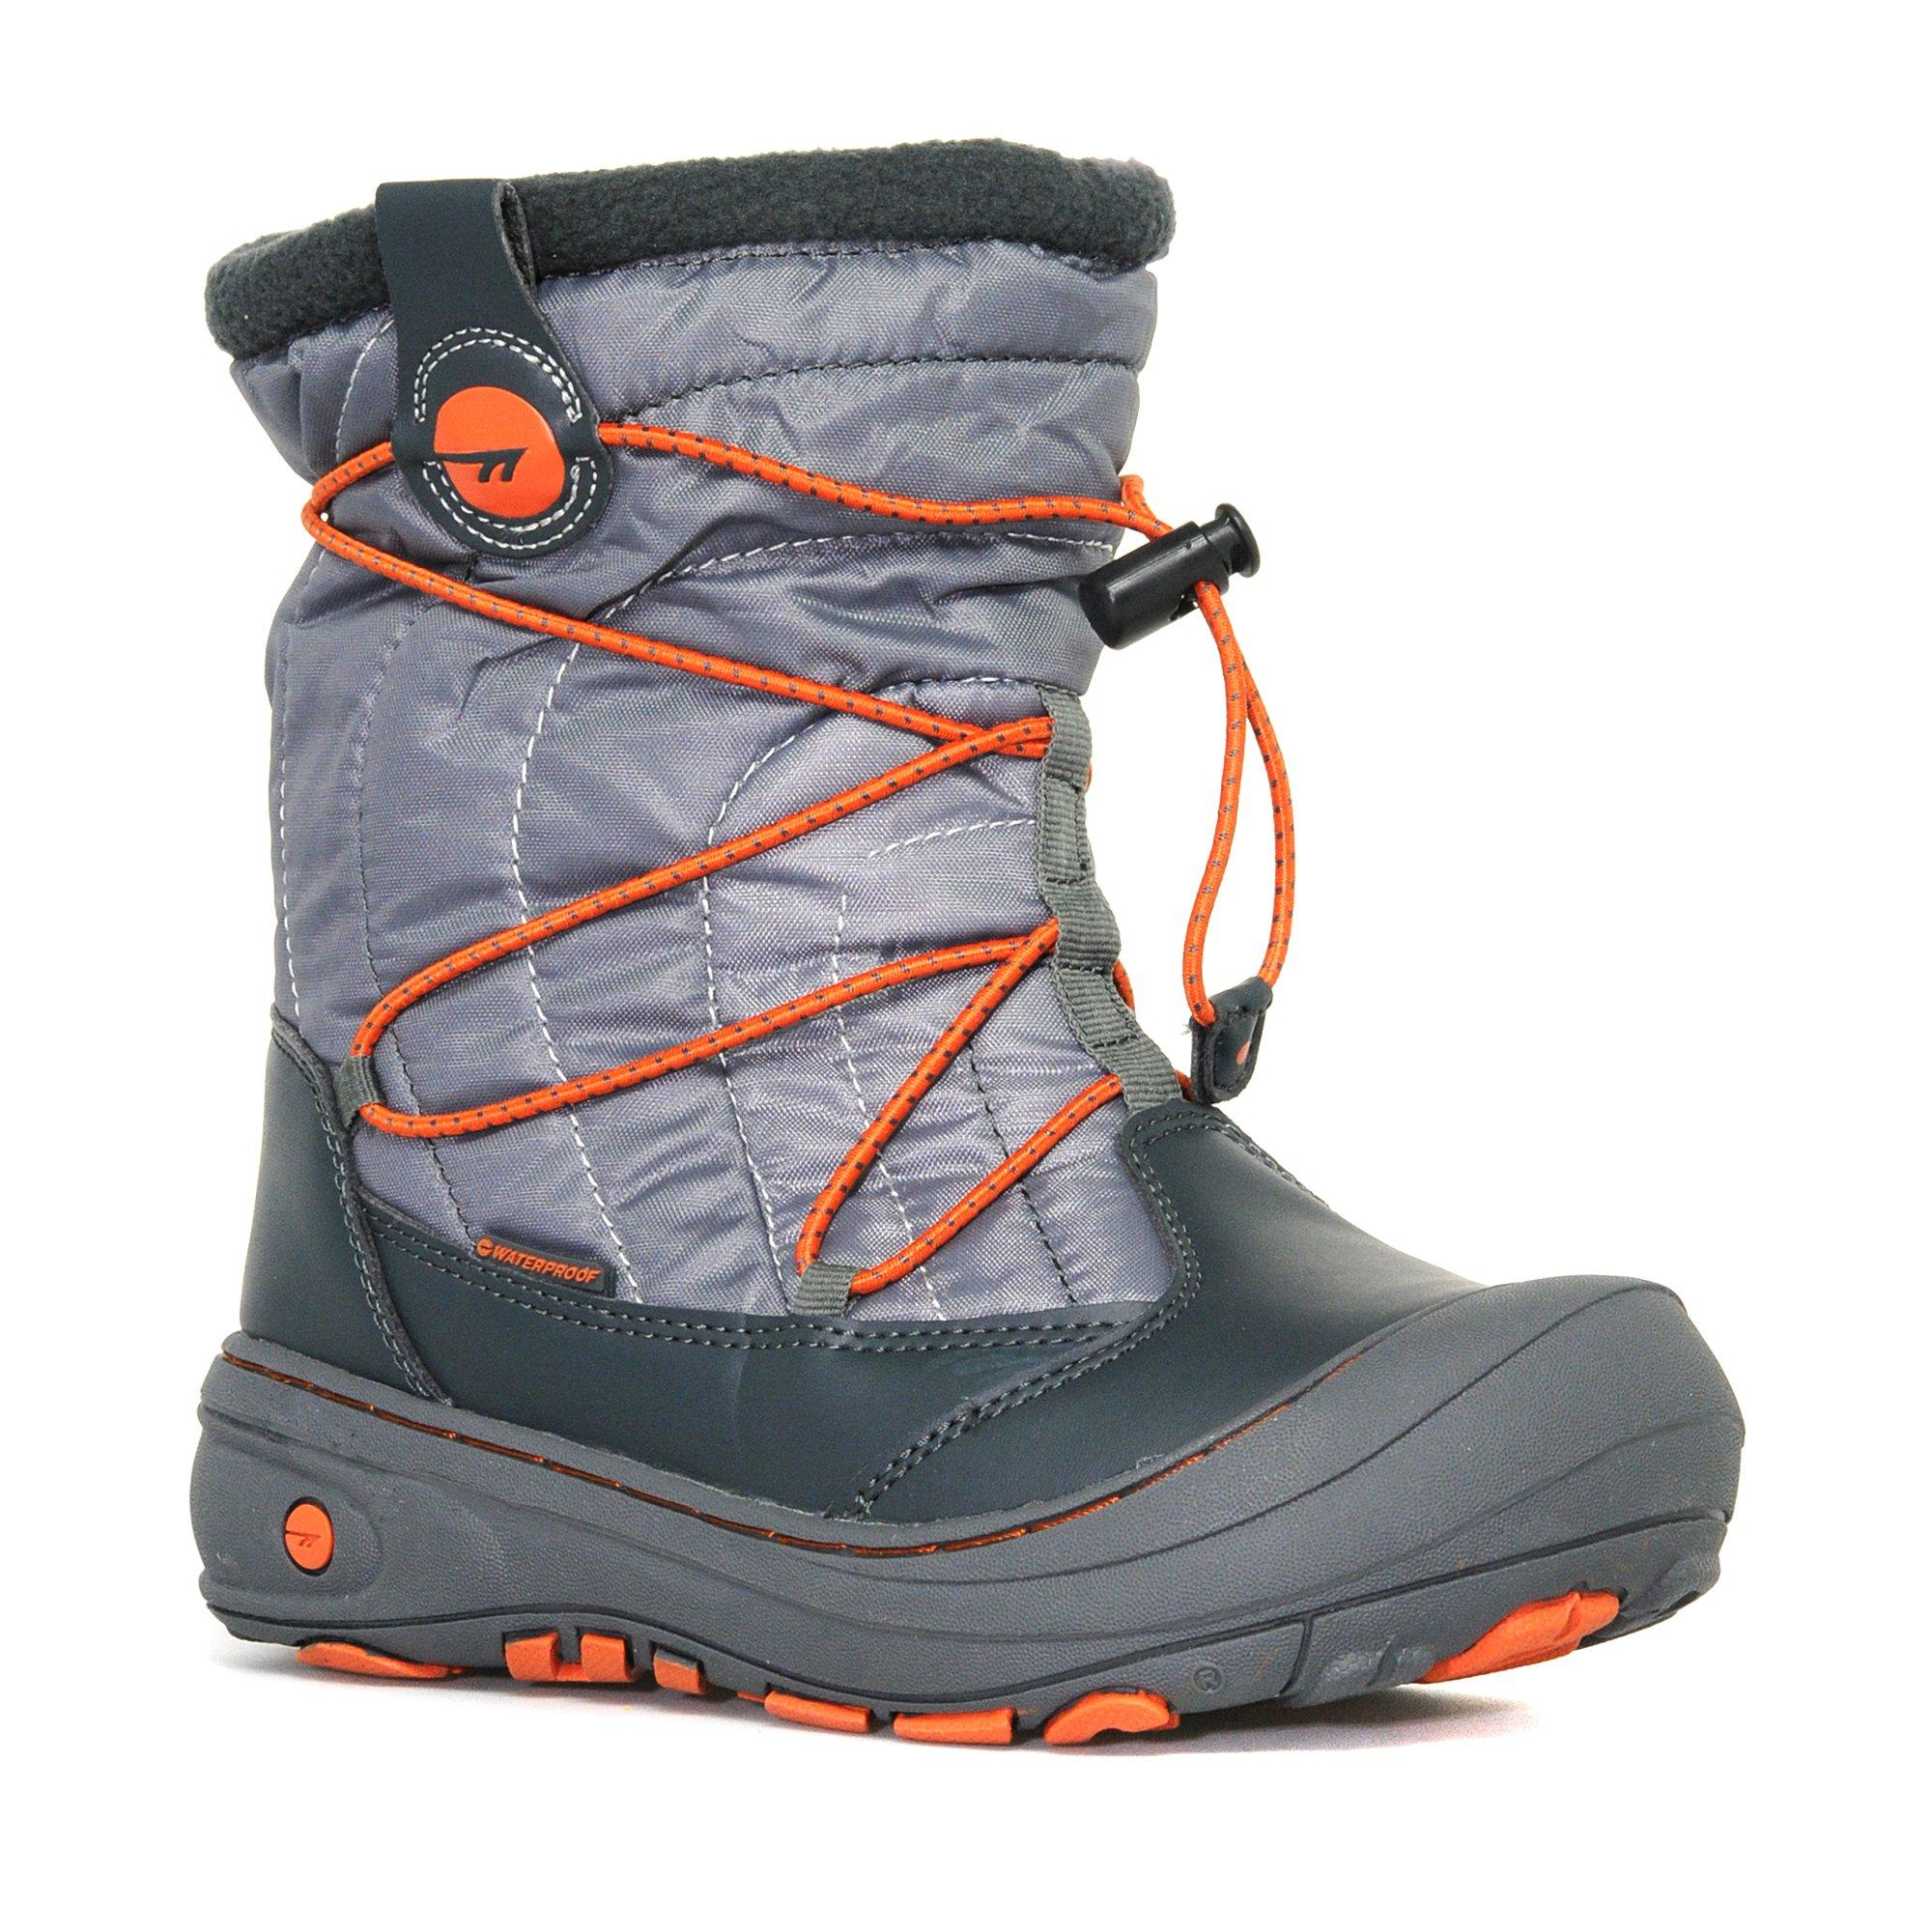 Kids Snow Boots | Snow Boots for Kids | Millets